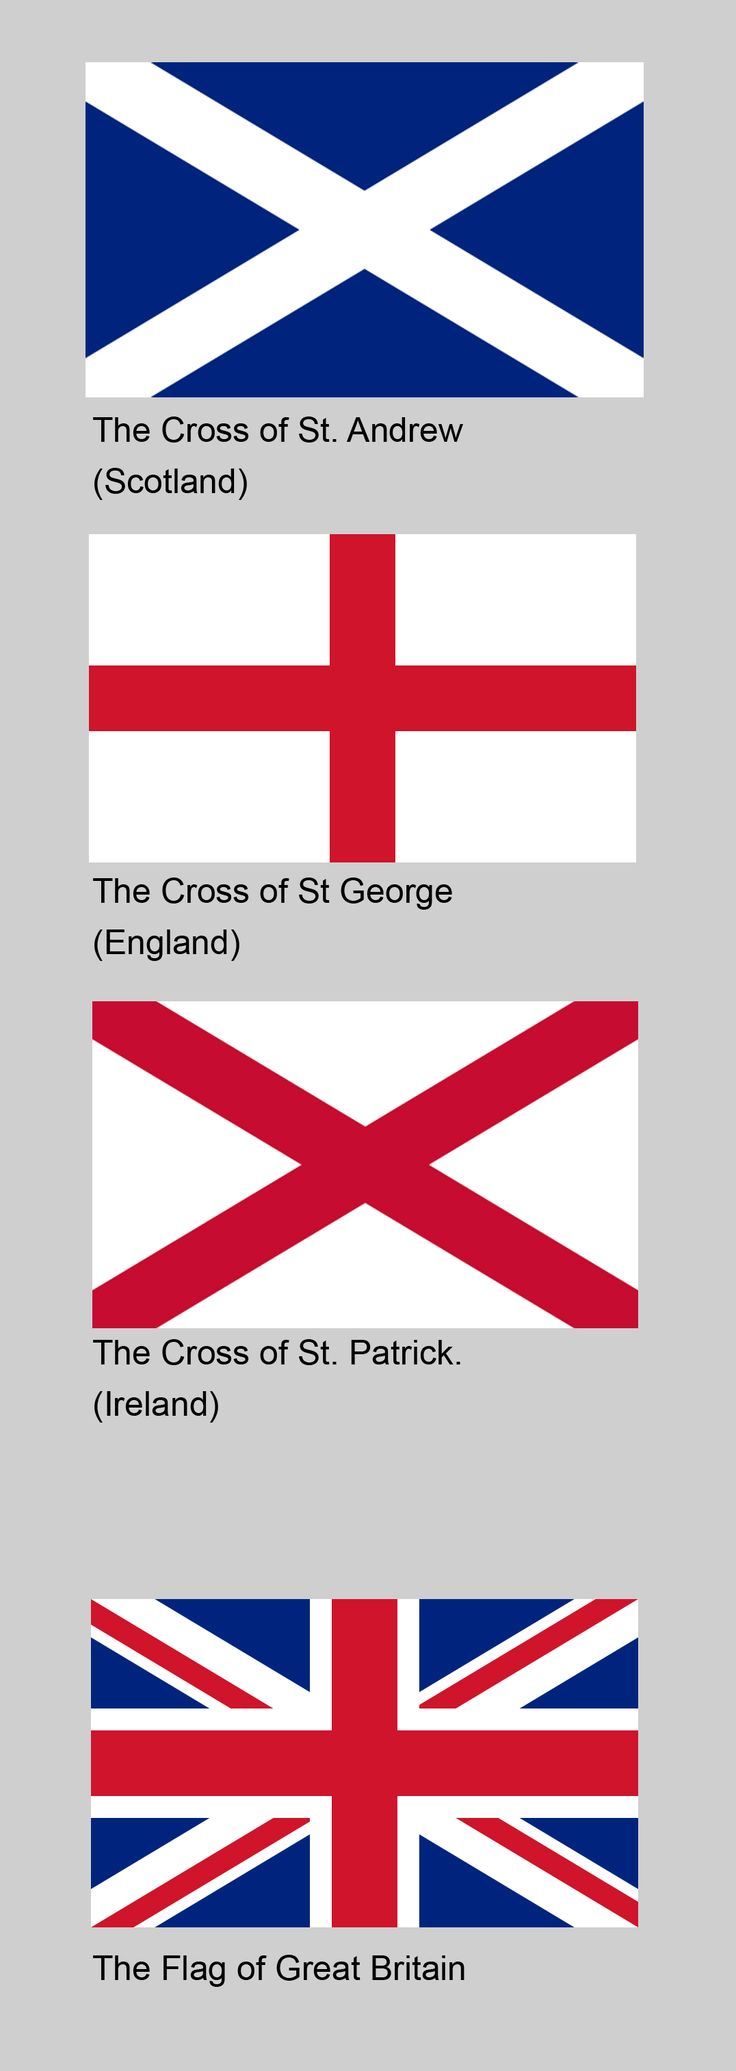 Correction, flag of the United Kingdom. The flag of Great Britain doesn't have the St Patrick cross as Ireland was not fully incorporated under the crown until 1807 I.e the formation of the United Kingdom of Great Britain and Ireland. Wales is not featured because it's a principality, not a kingdom.